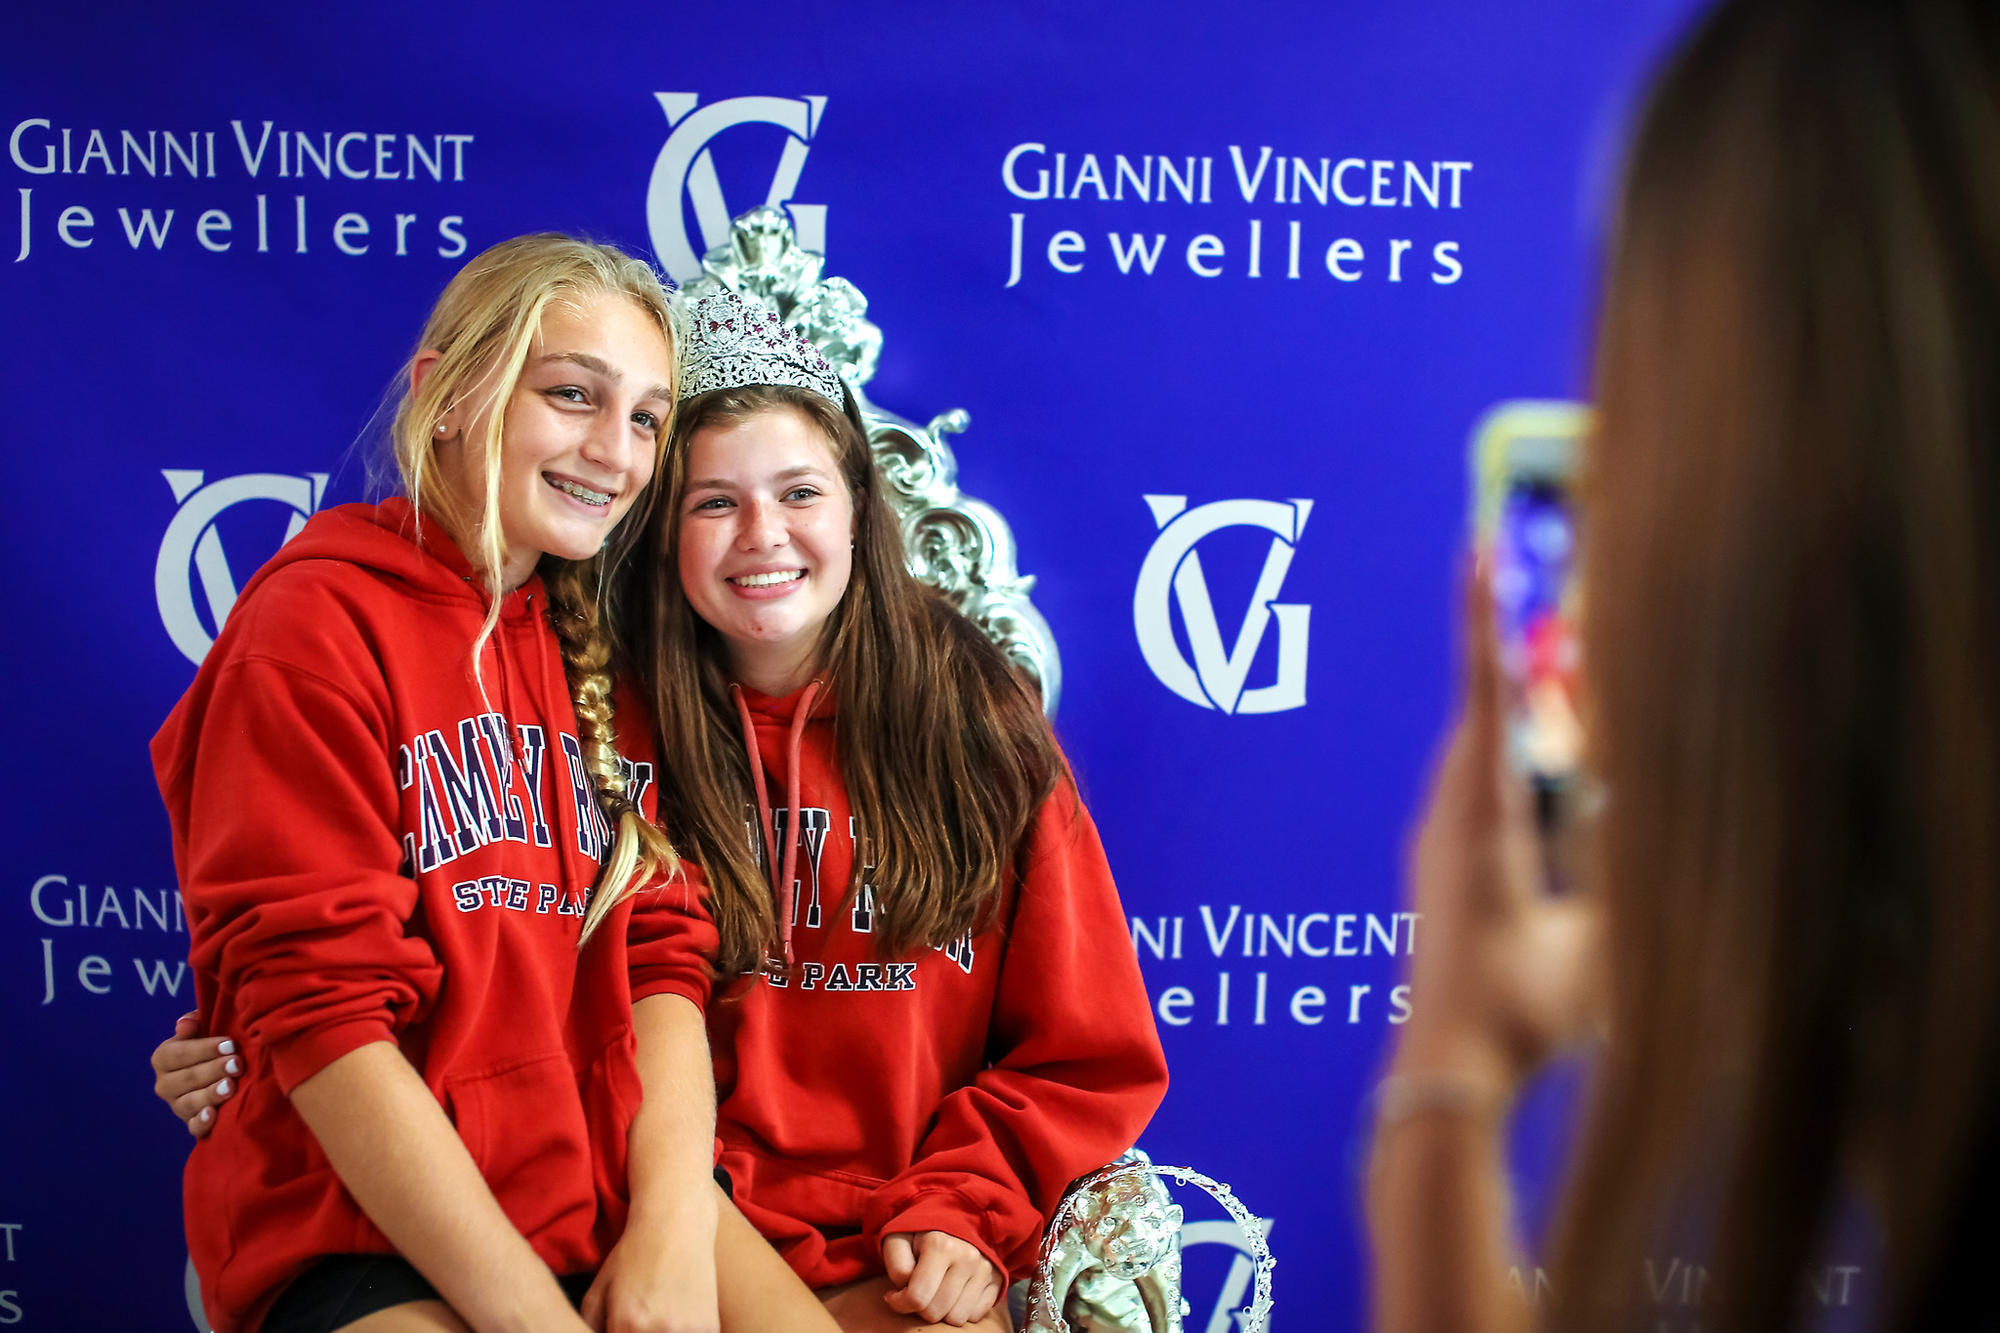 Diamond and ruby tiara, in memory of nephew, becomes a fundraising jewel